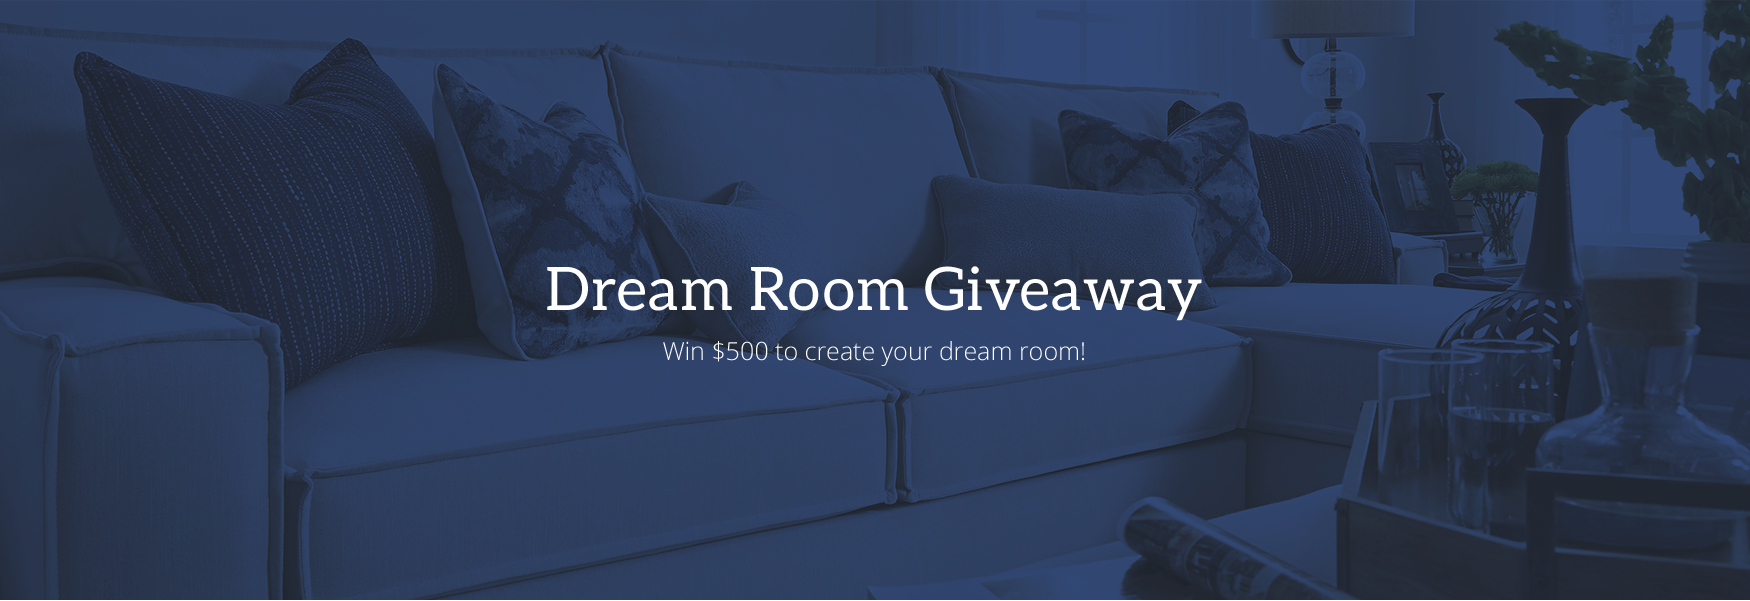 Dream Room Giveaway